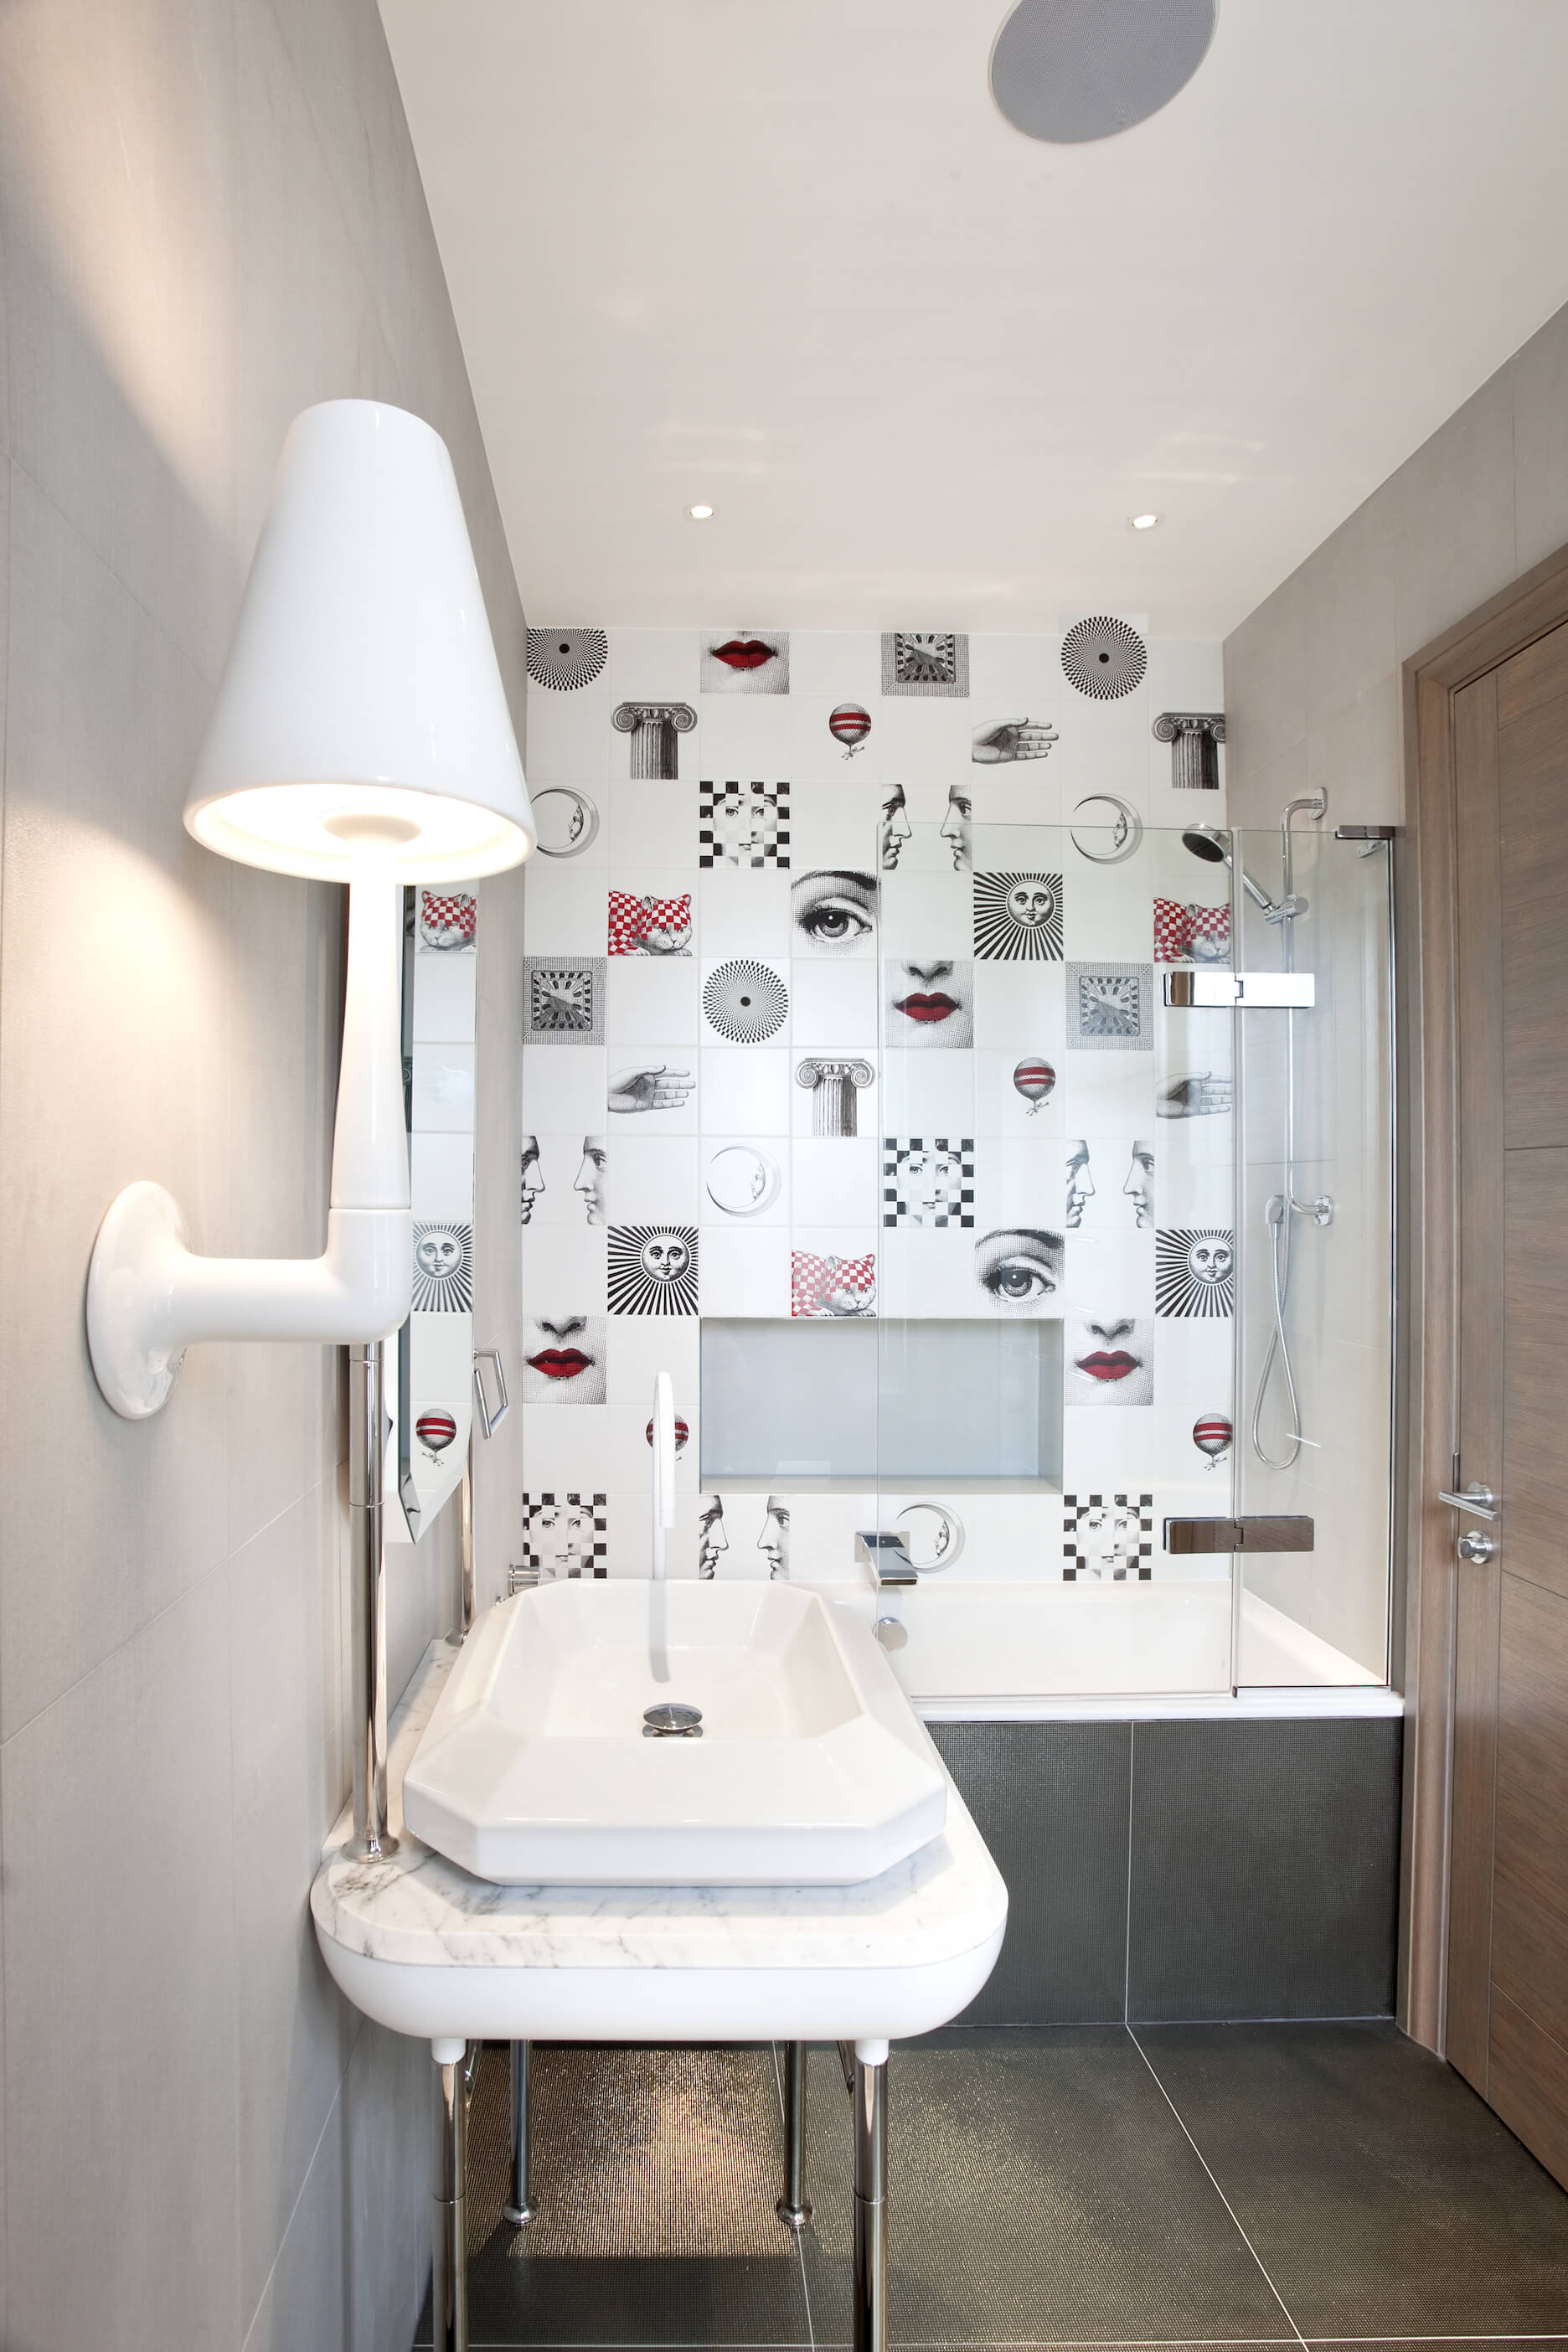 In another bathroom, we see a free standing marble topped vanity with extra wide vessel sink over grey large format tile floor. Glass enclosure shower sports unique art piece tiles for a playful look.